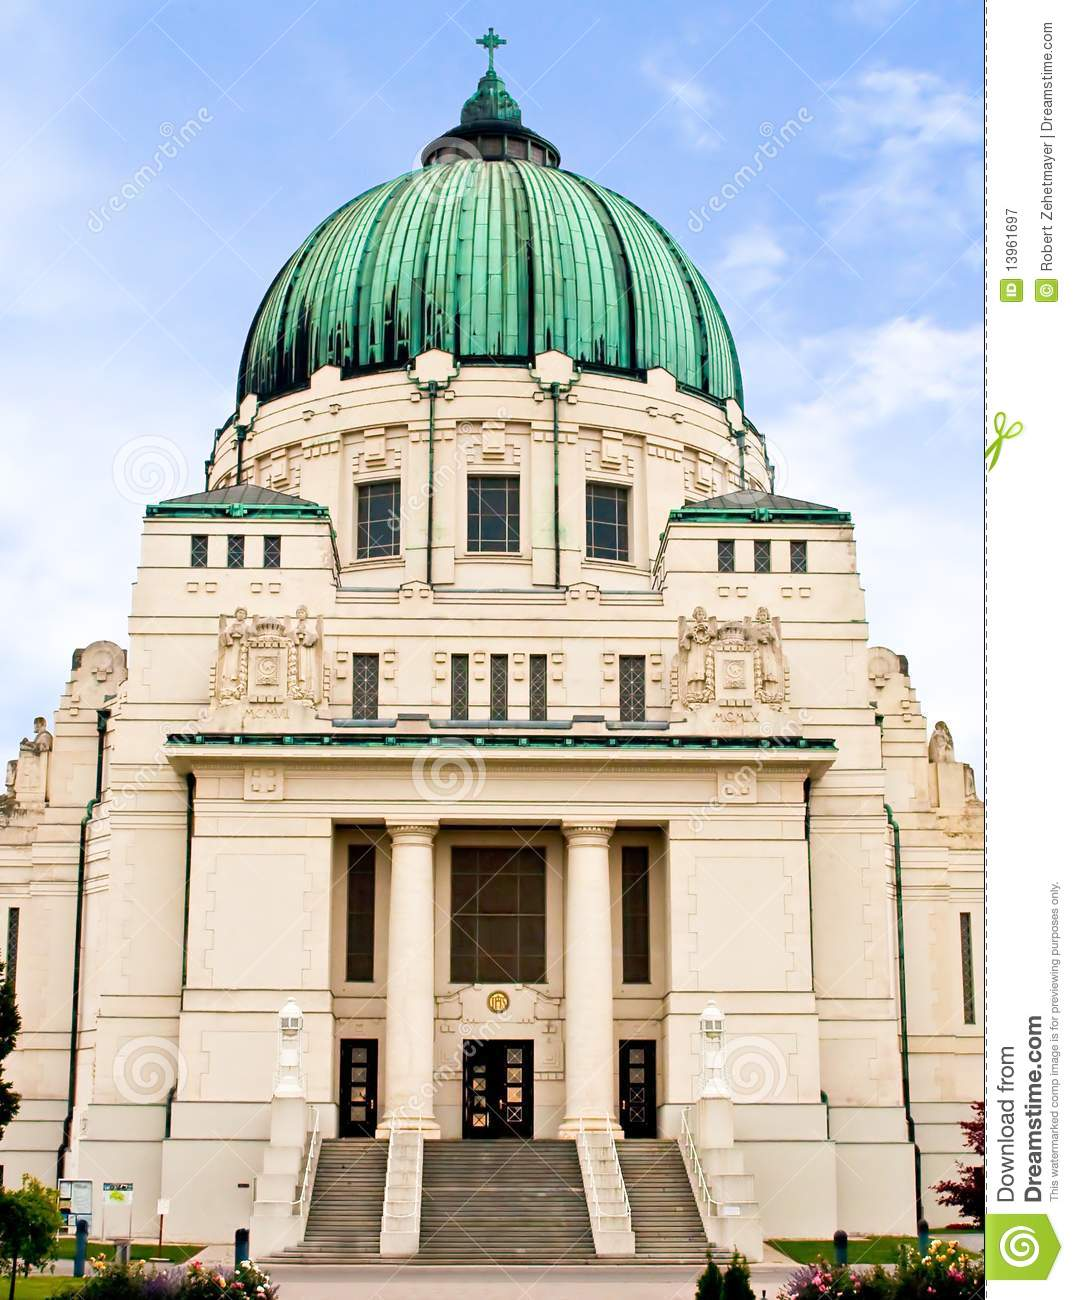 Otto Wagner Church and Hospital: Art Nouveau Tour